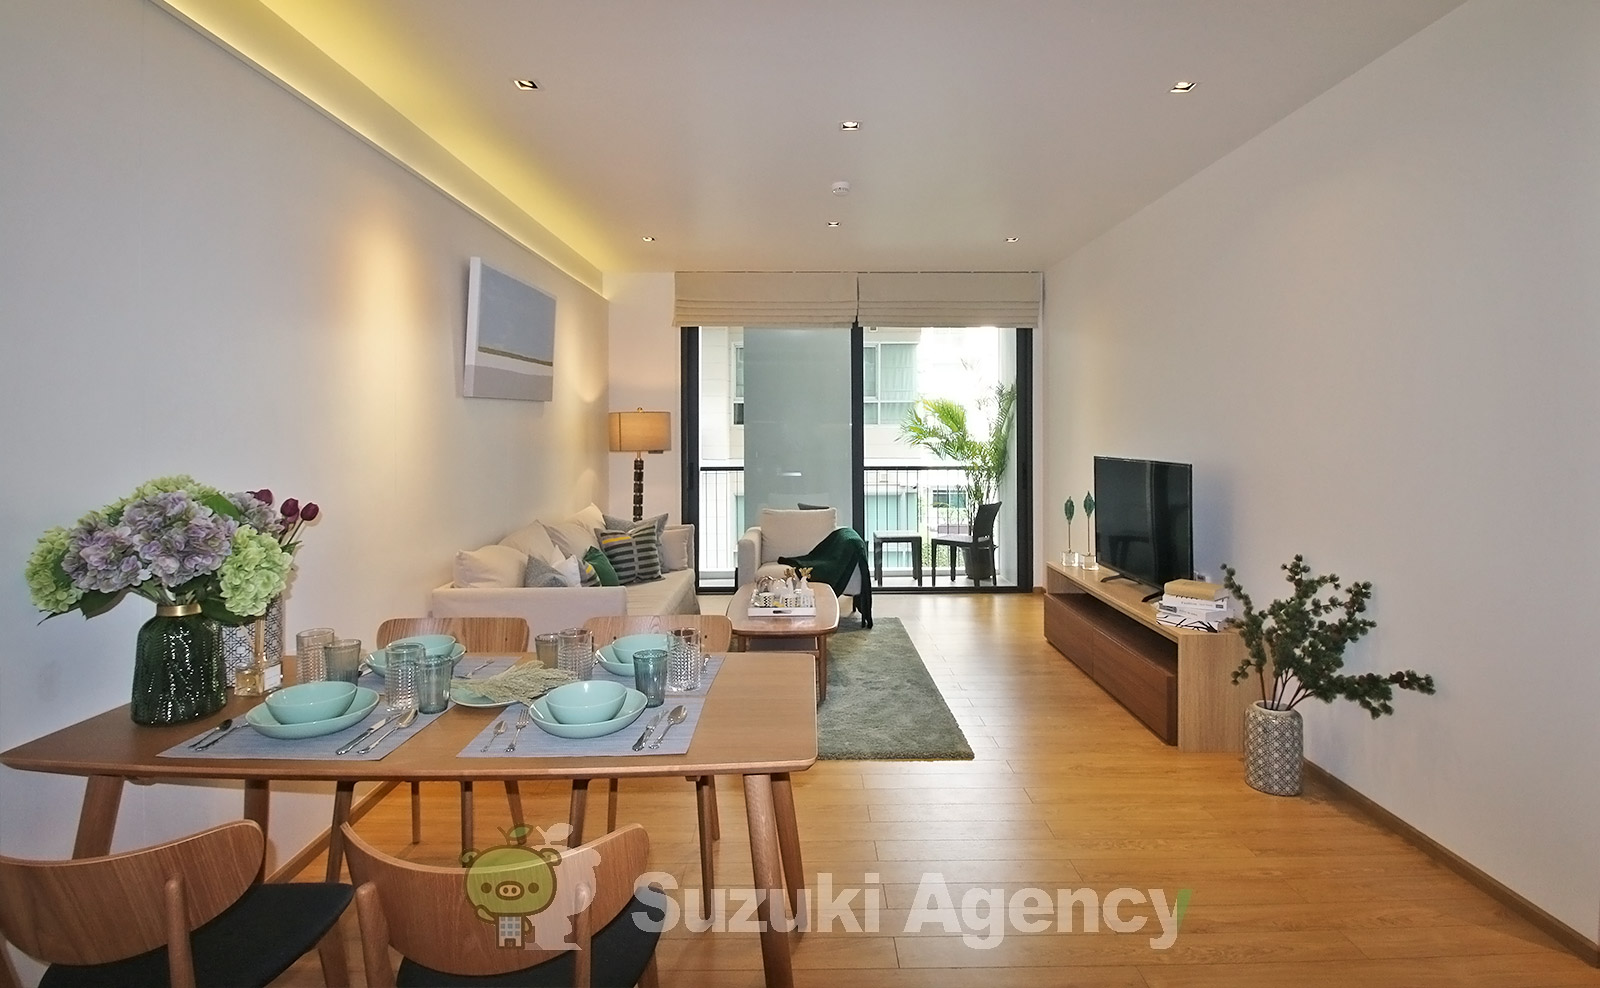 Jitimont Residence:2Bed Room Photos No.1